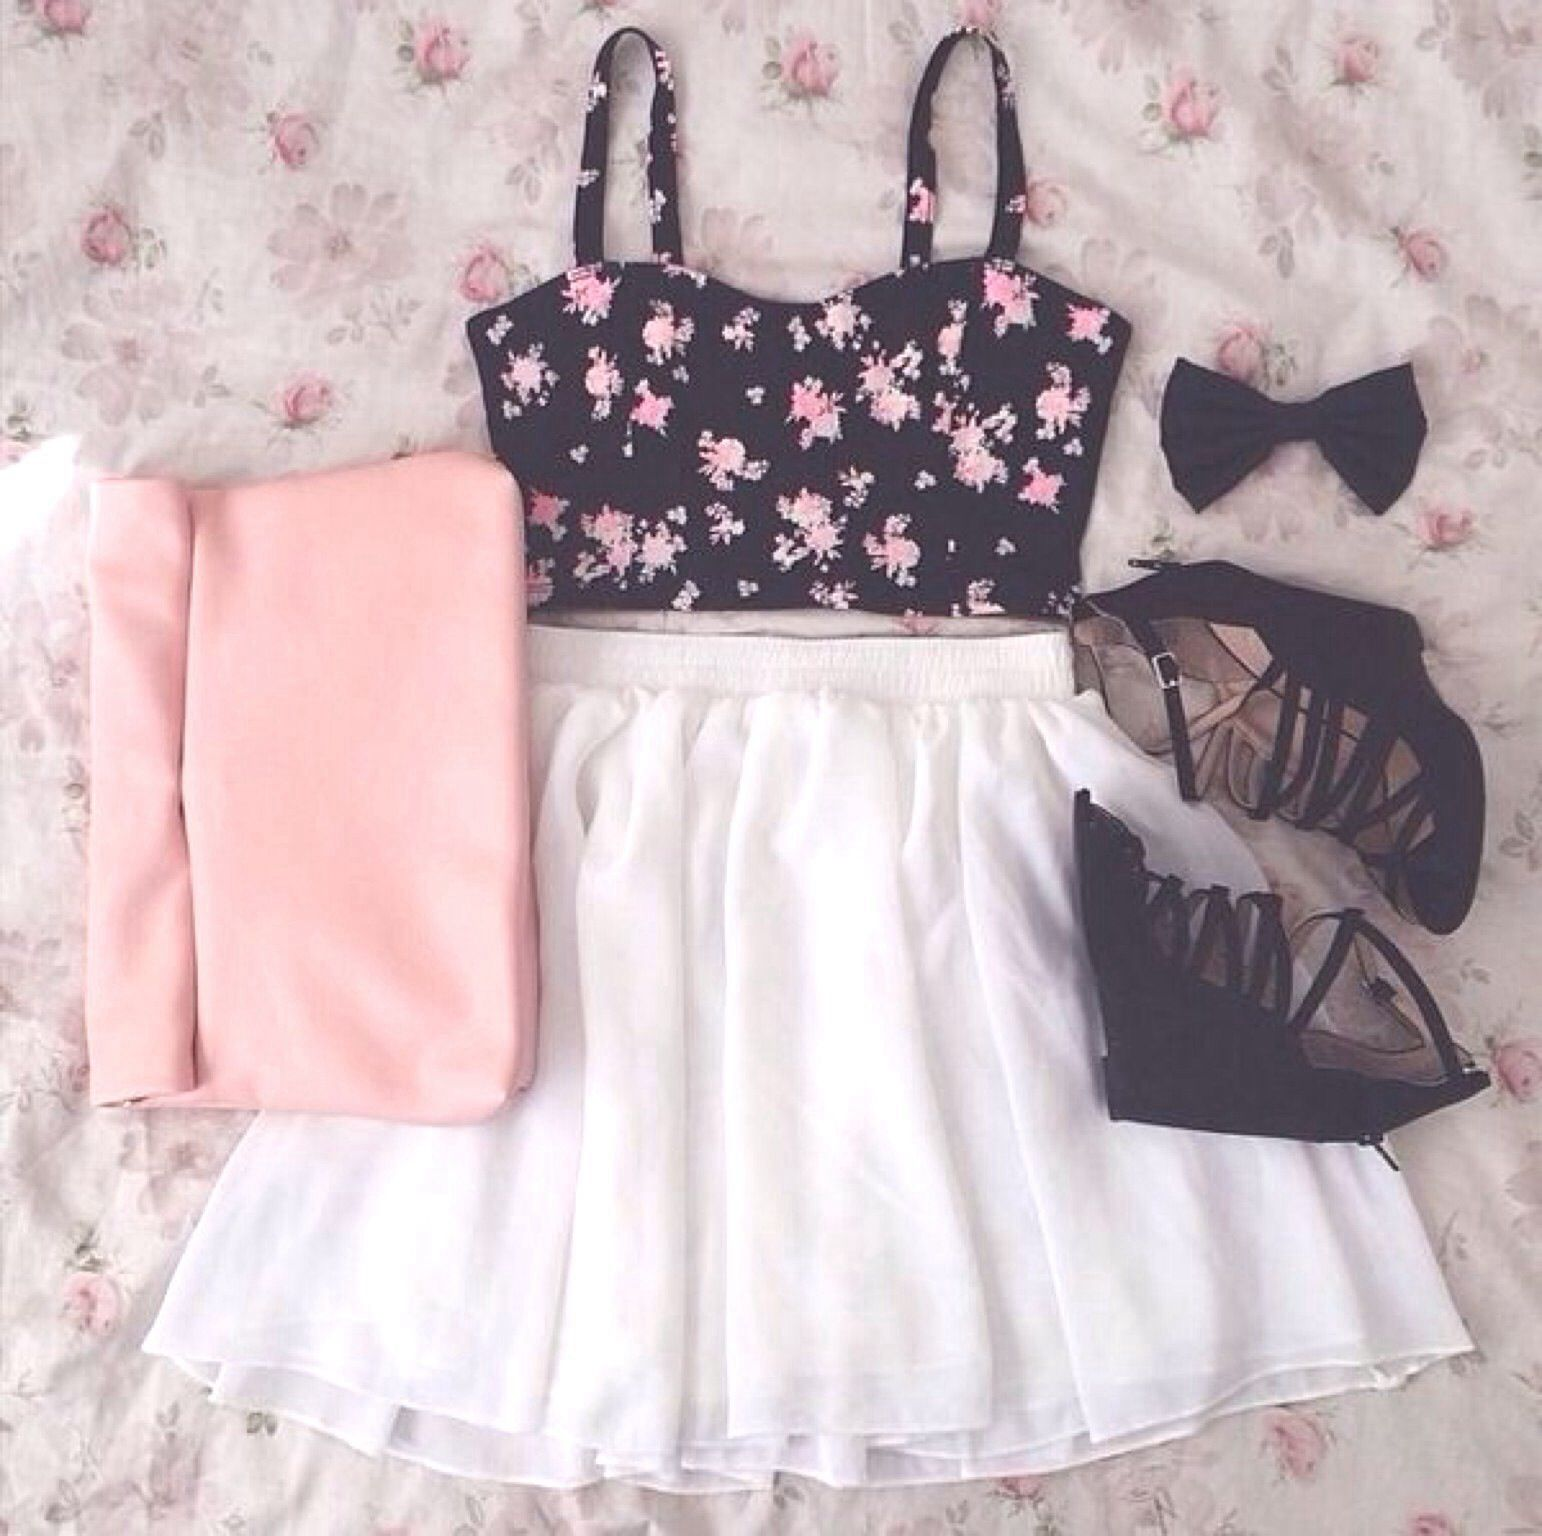 Teen fashion ariana grande inspired outfit this is gorgeous